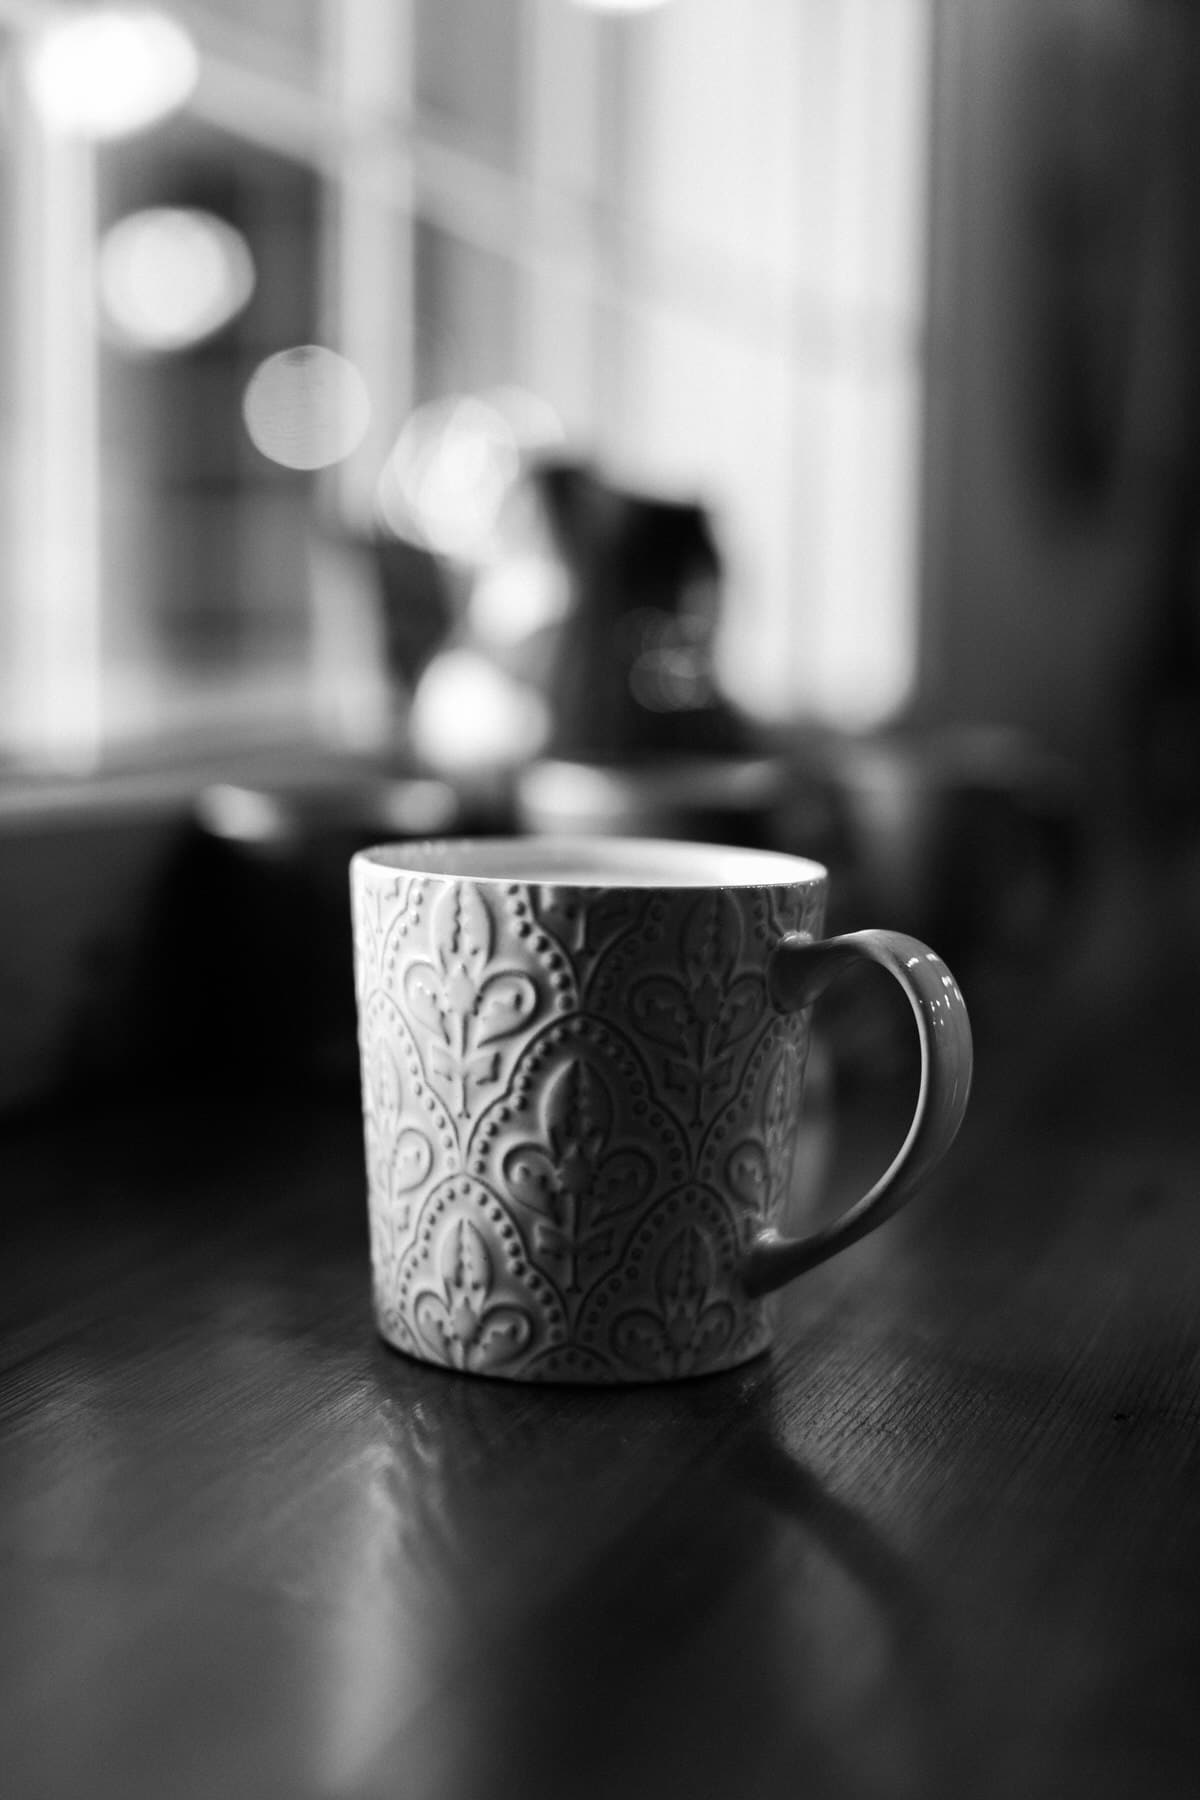 Urban-Fuel-Coffee-Fond-du-Lac-Wisconsin-black-and-white-fine-art-photography-by-Studio-L-photographer-Laura-Schneider-_2725